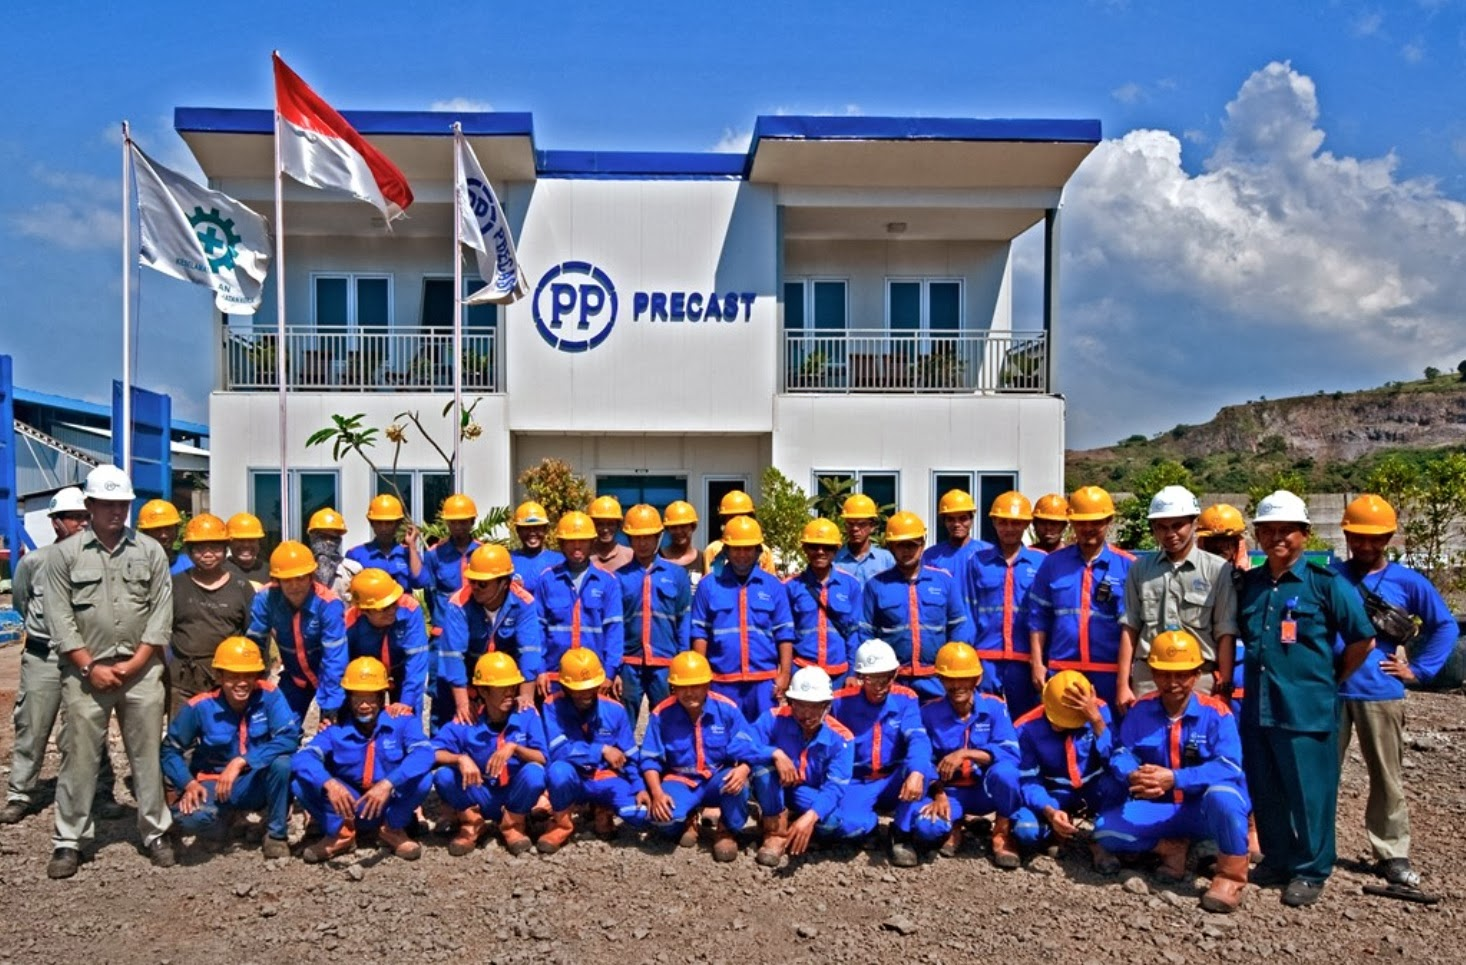 PP Pracetak Precast Recruitment